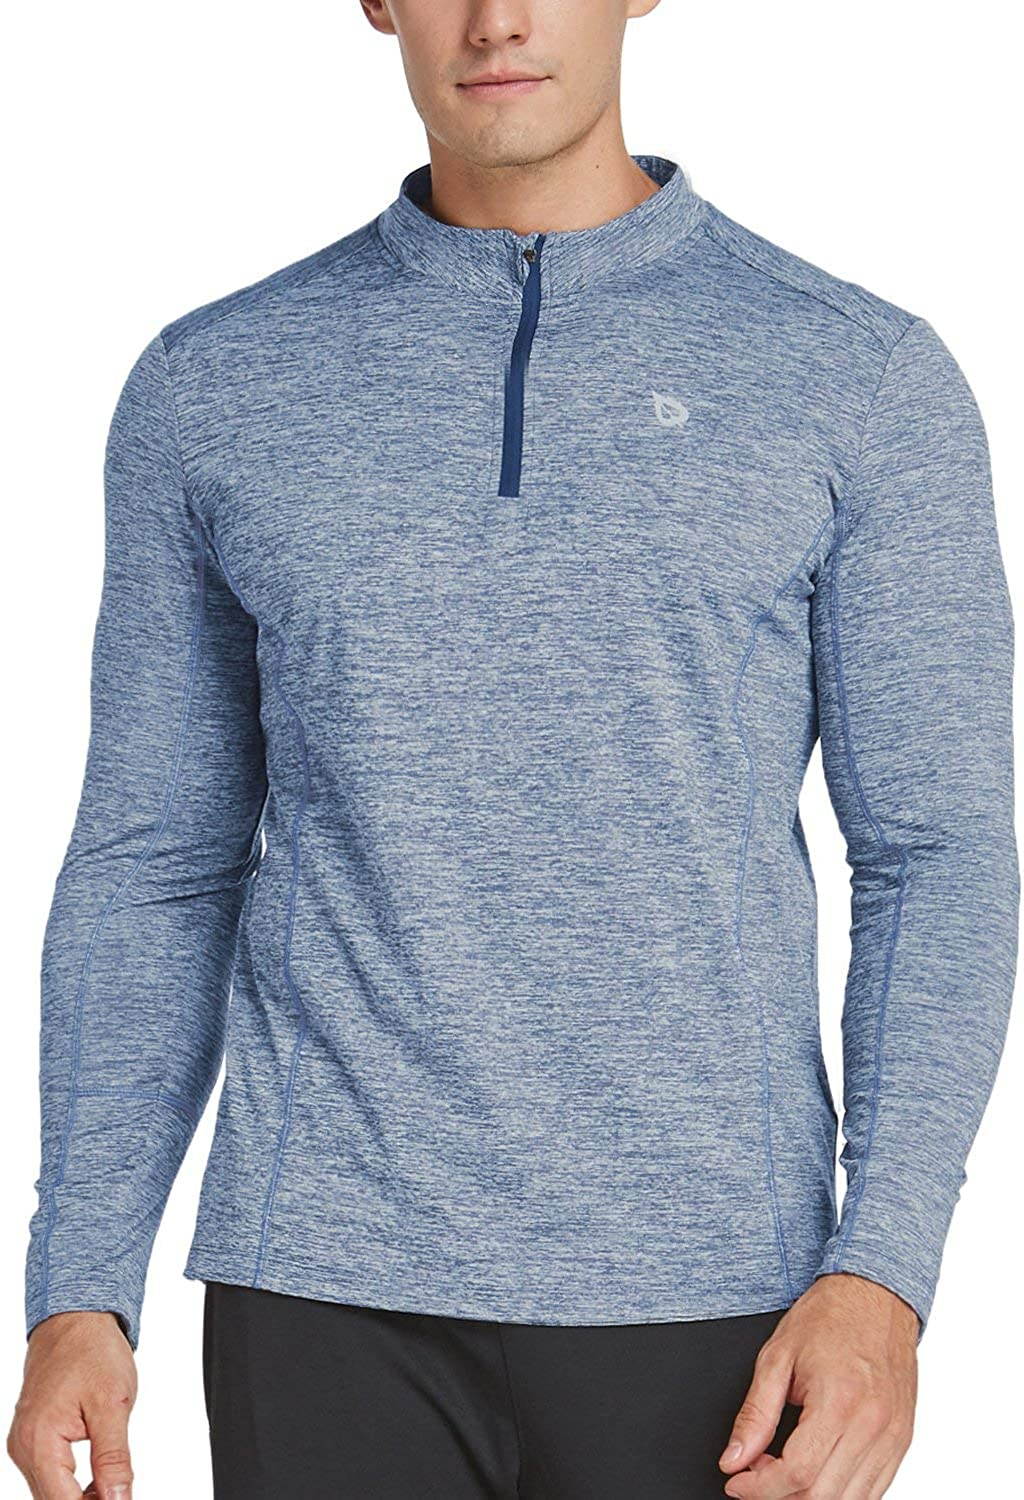 BALEAF Men's 1/4 Zip Pullover Running Shirts Long Sleeved Tops Side/Back Pocketed: Clothing